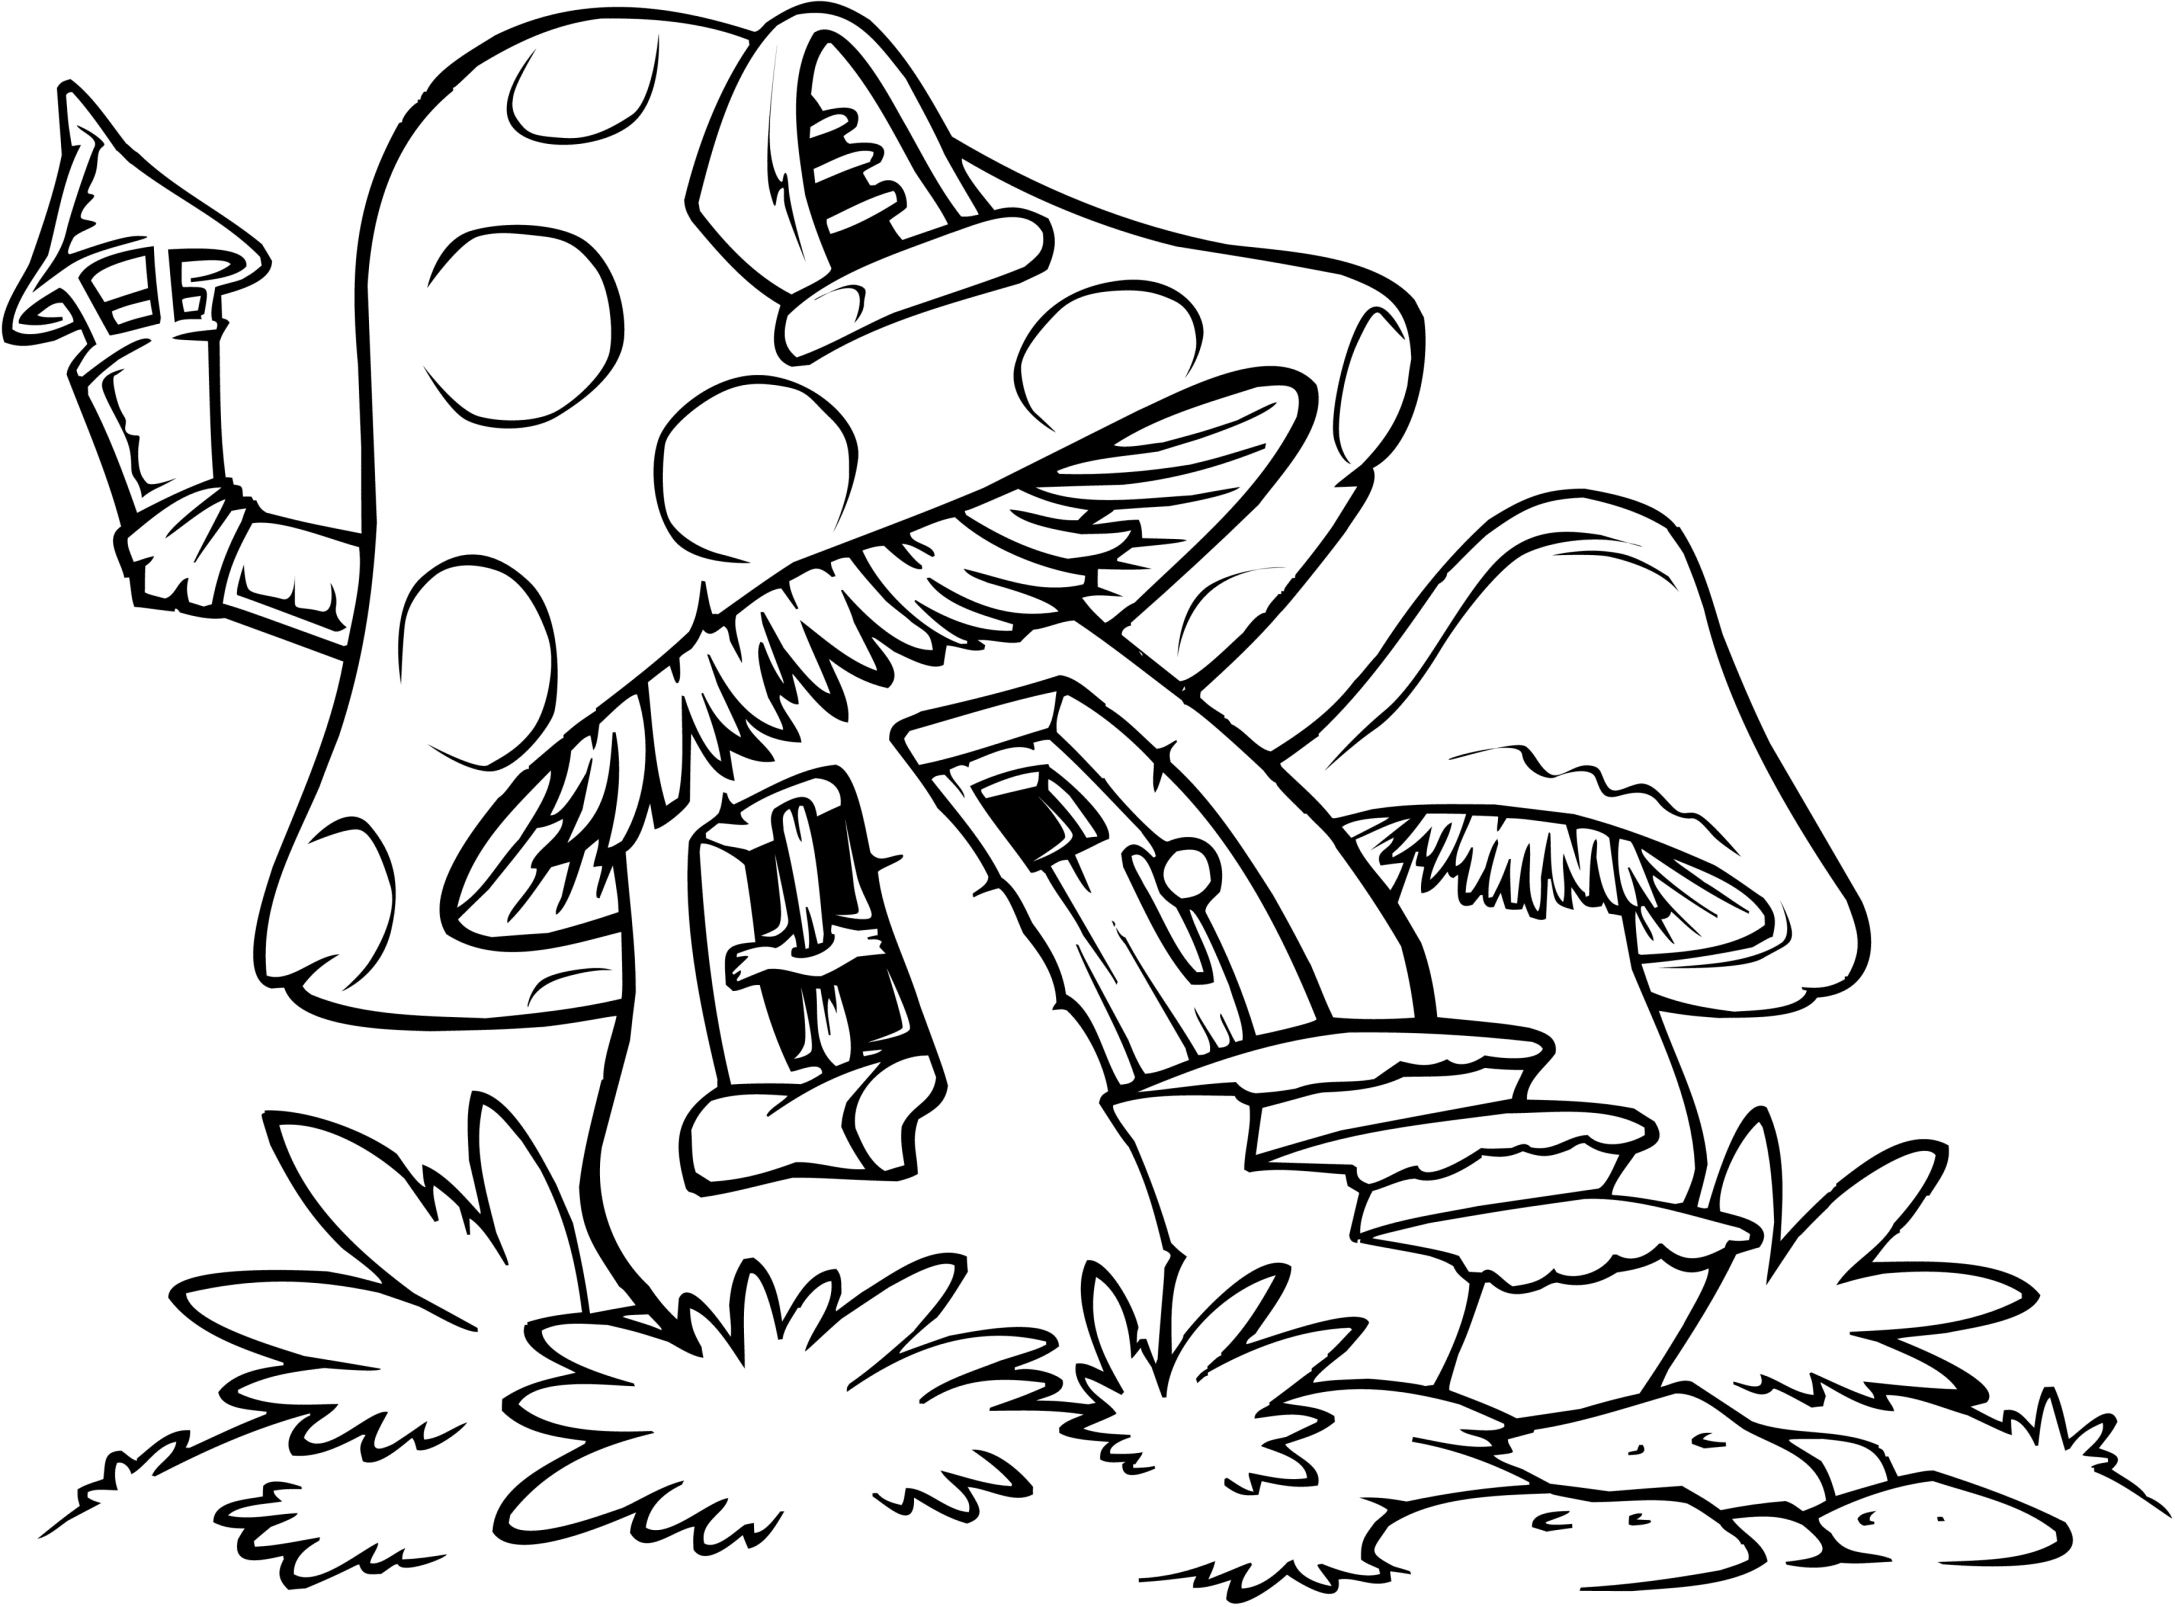 Coloring Pages On Pinterest Coloring Book Easy Coloring Pages Zendoodles For Cards Pinterest